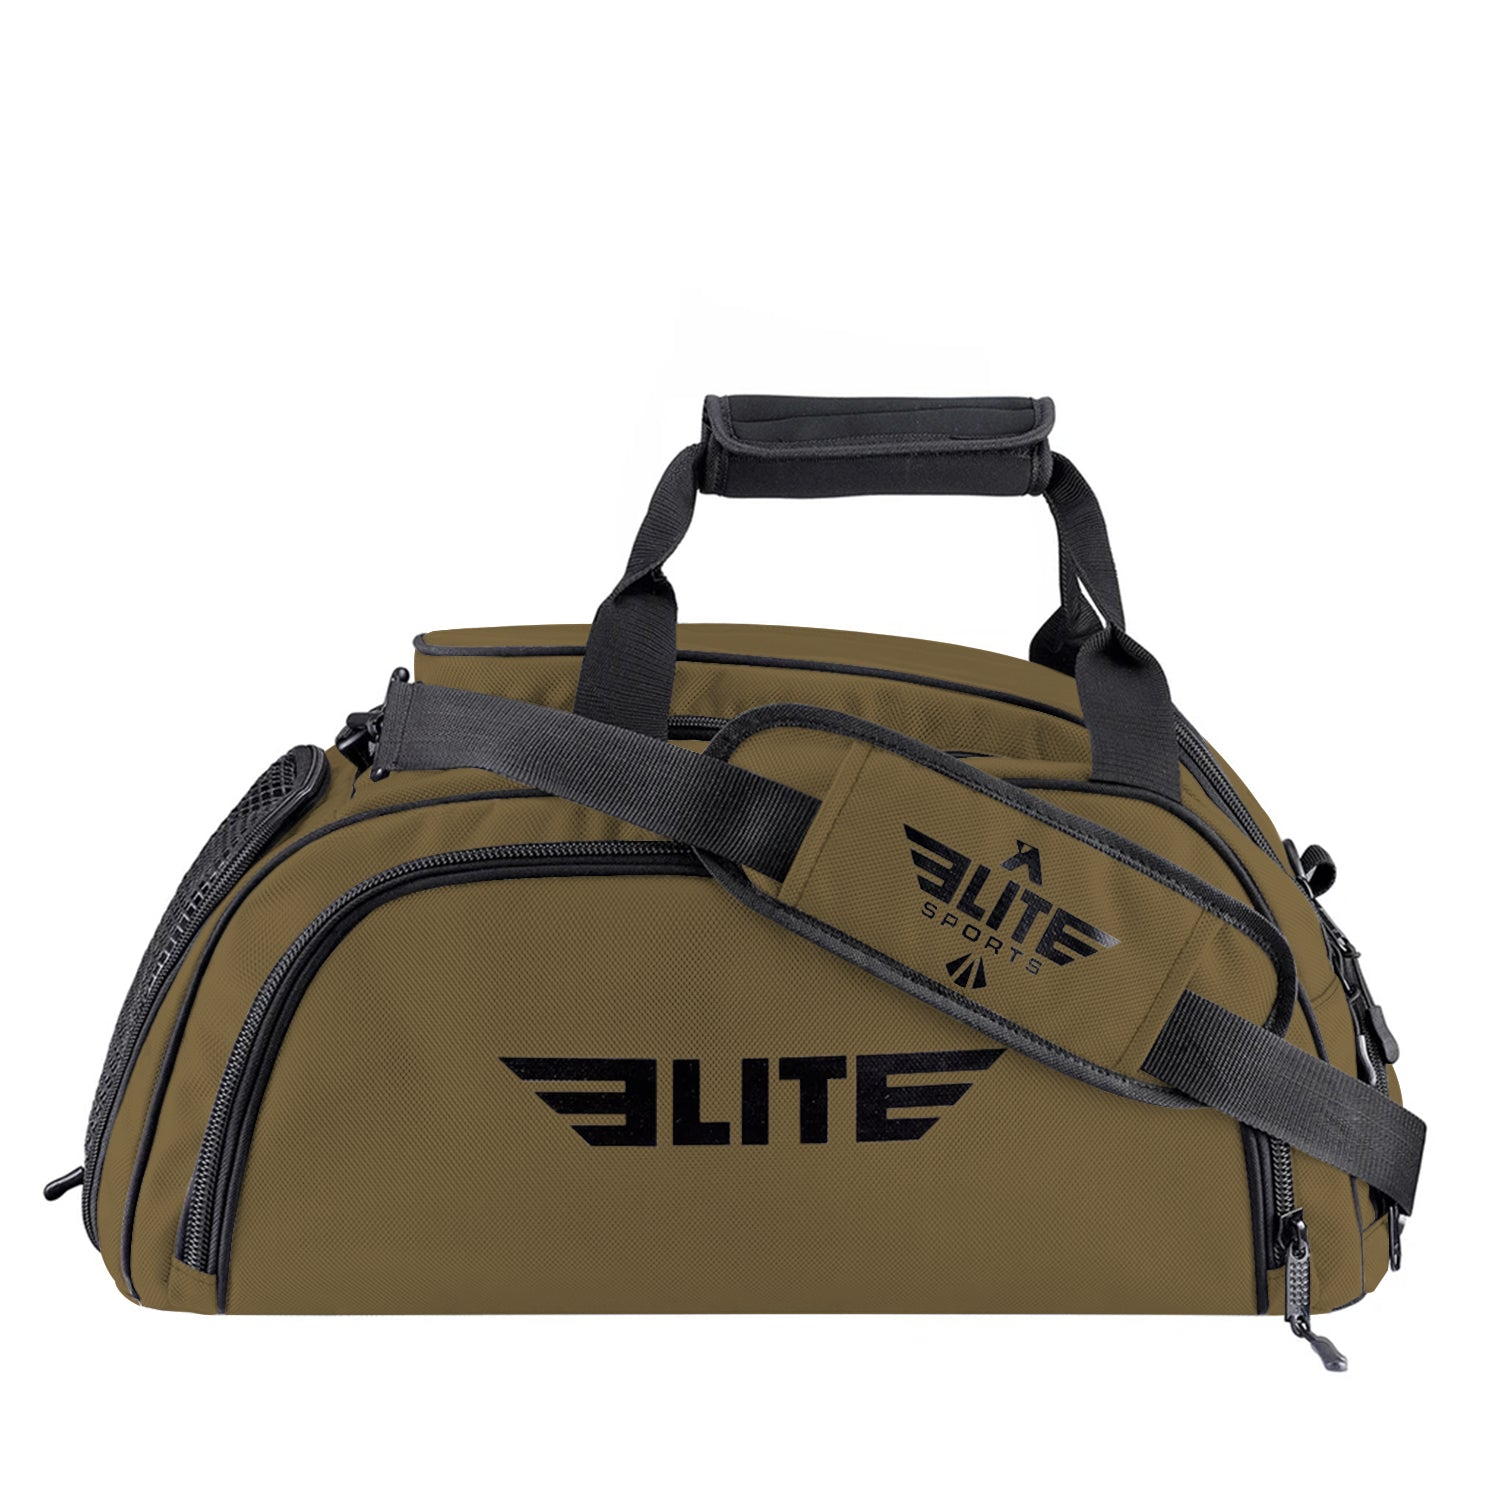 Elite Sports Warrior Series Khaki Medium Duffel Boxing Gear Gym Bag & Backpack